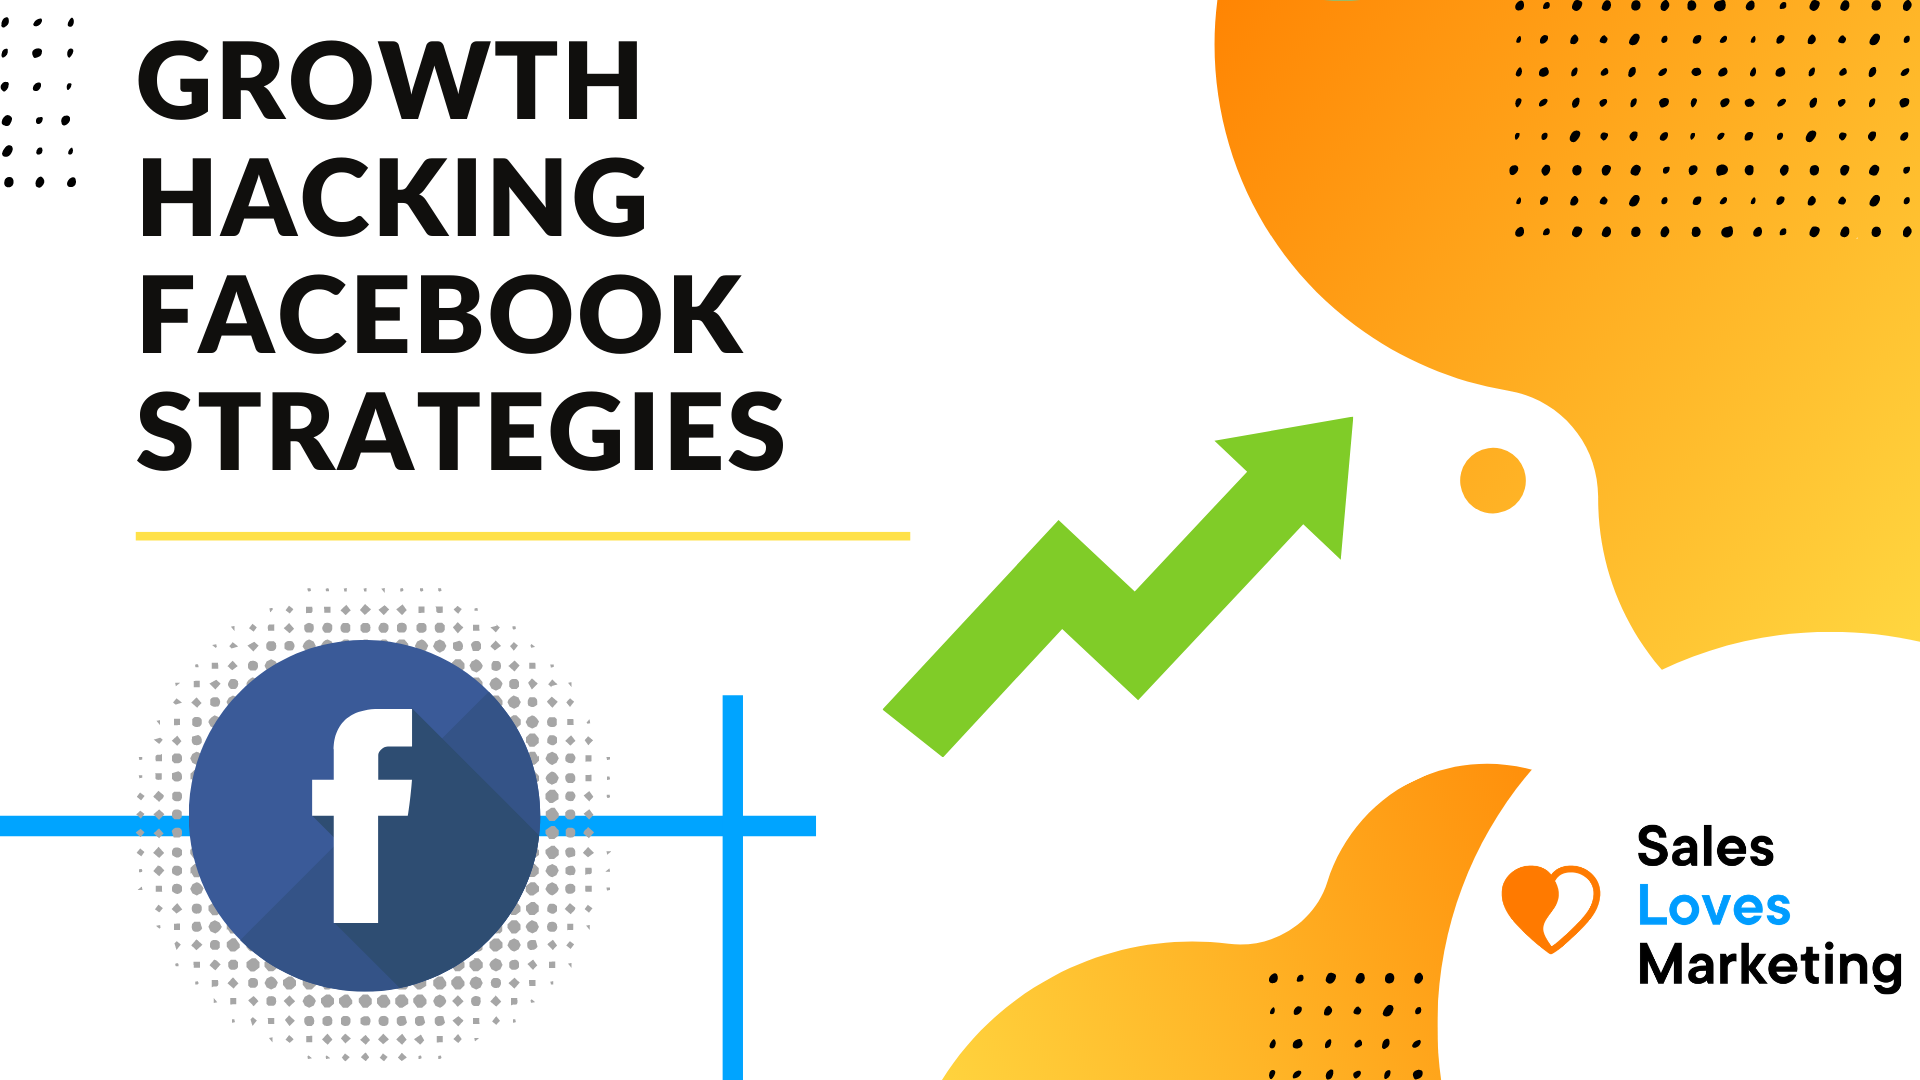 Learn new growth hacking strategies for Facebook to grow your website traffic